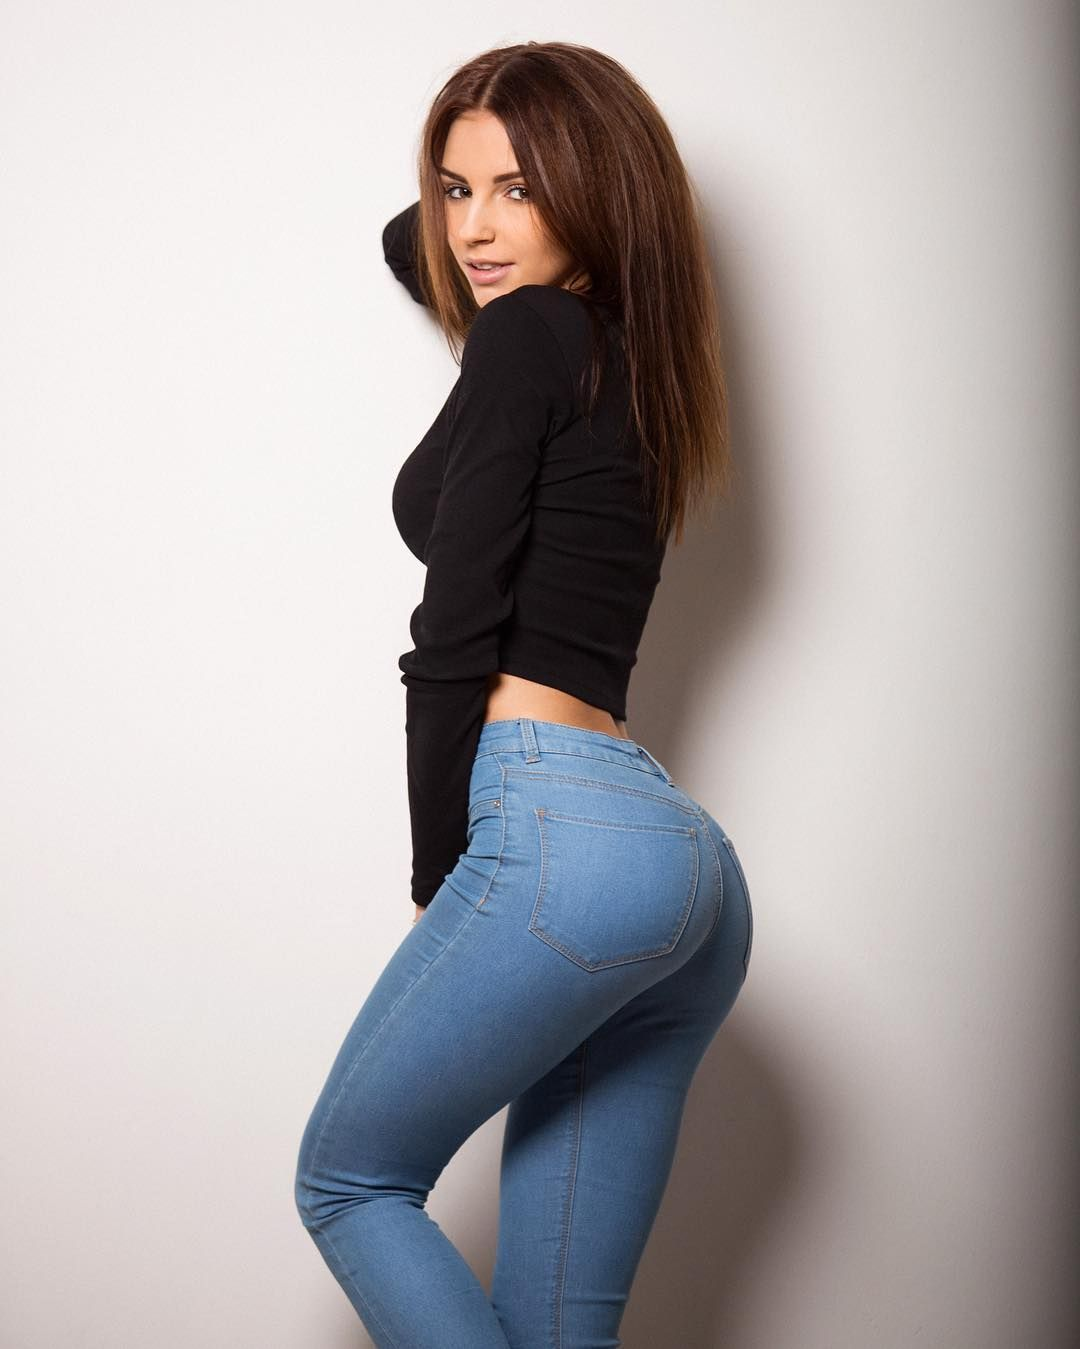 sexy girls in jeans